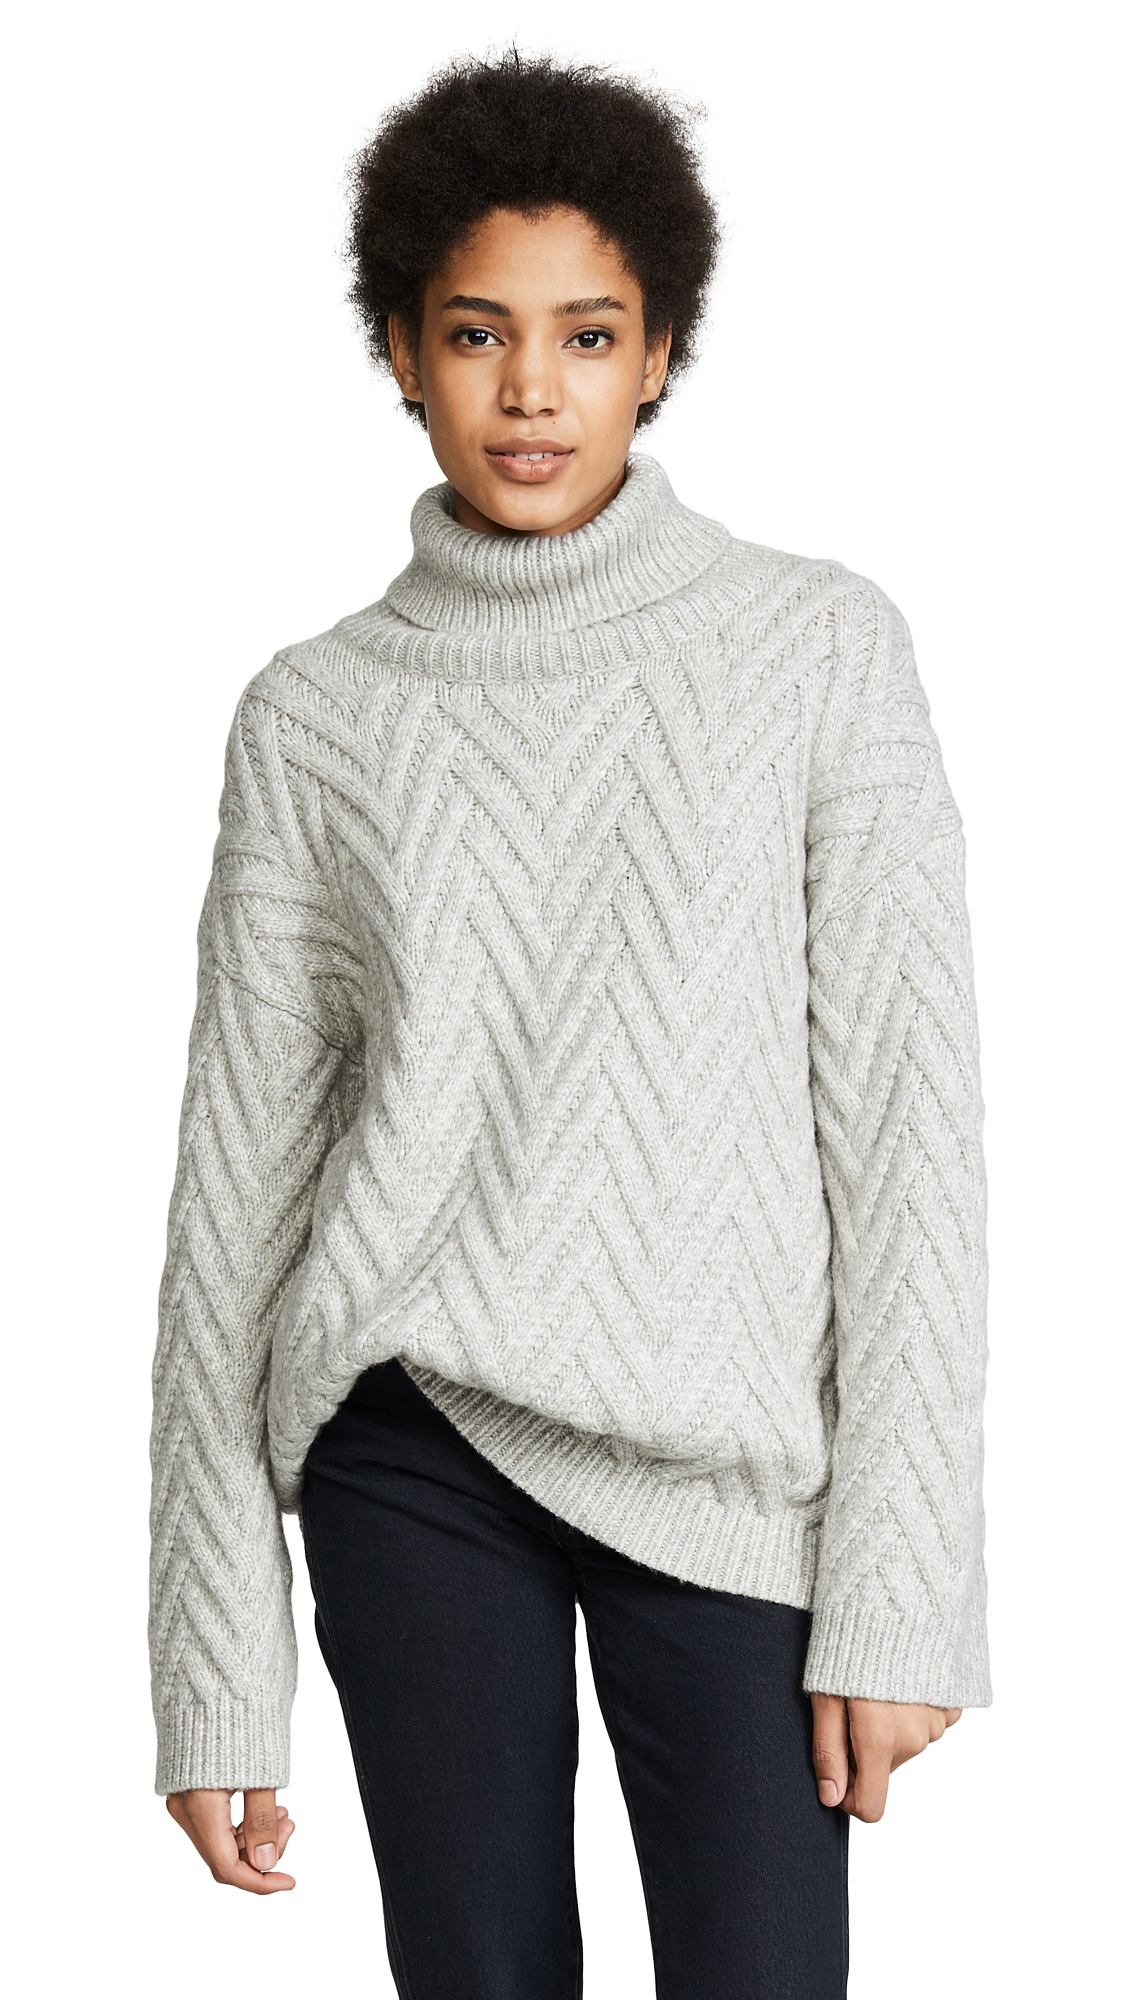 Nili Lotan Lee Sweater In Light Grey Melange